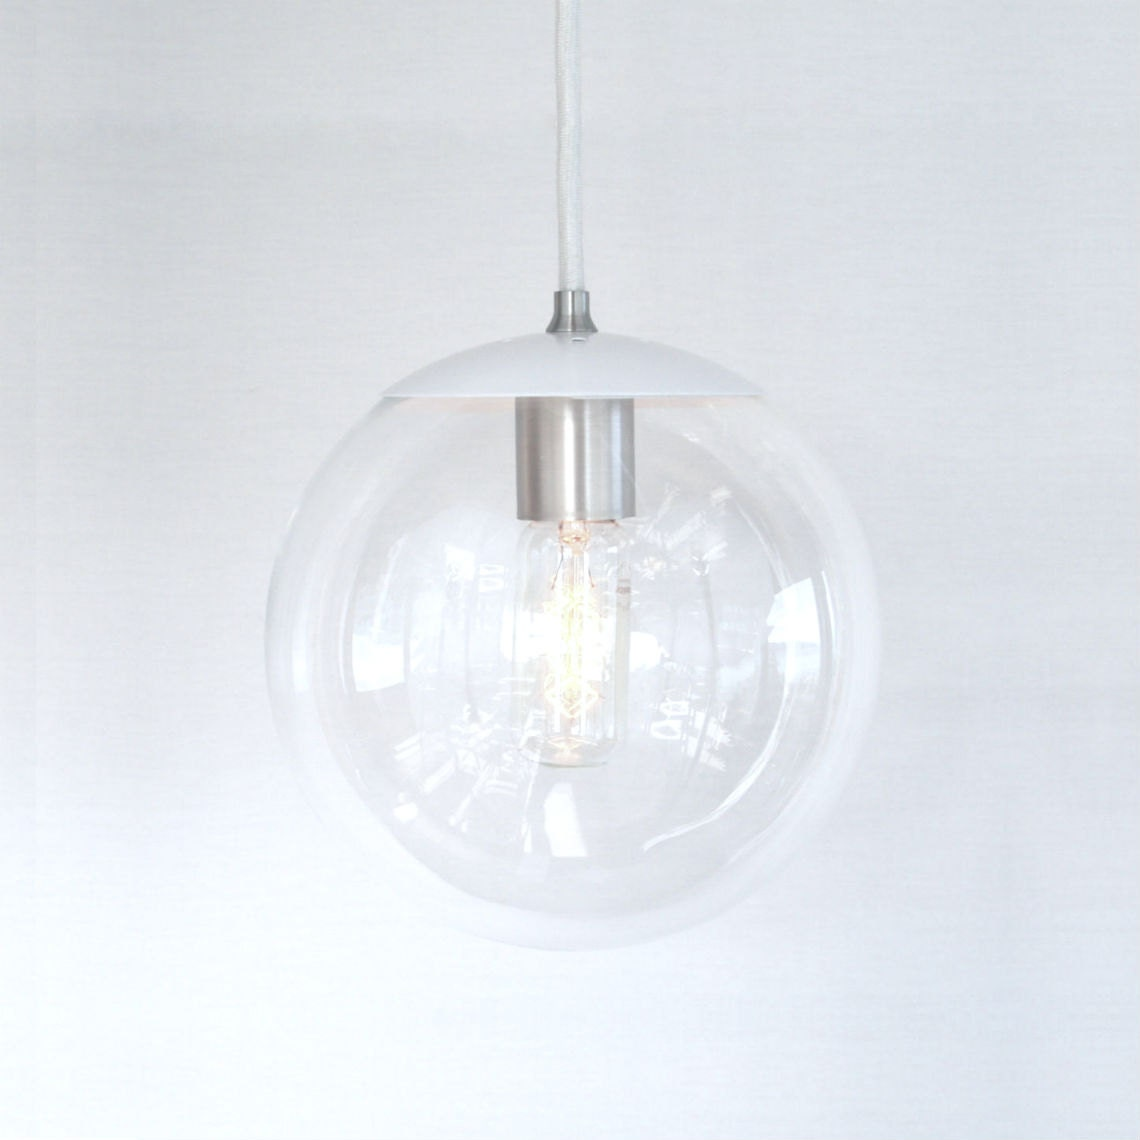 White pendant light mid century modern 8 clear glass Modern pendant lighting